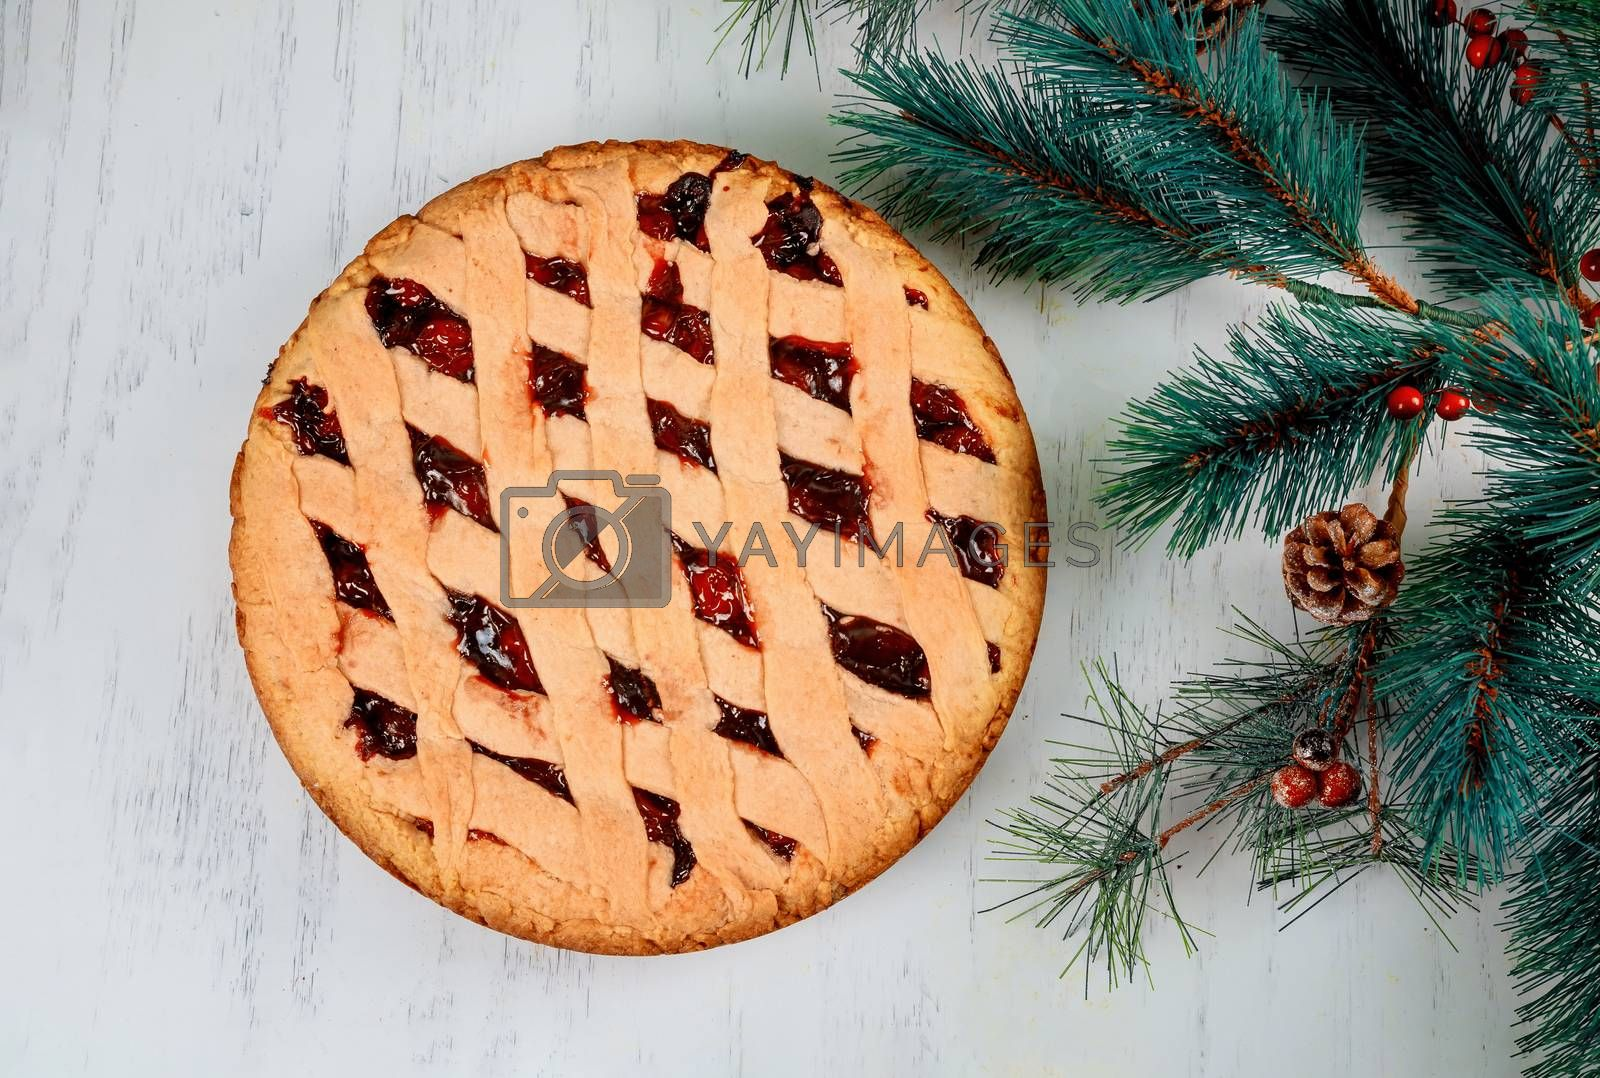 Homemade apple pie cake and chistmas decorations on a wooden background